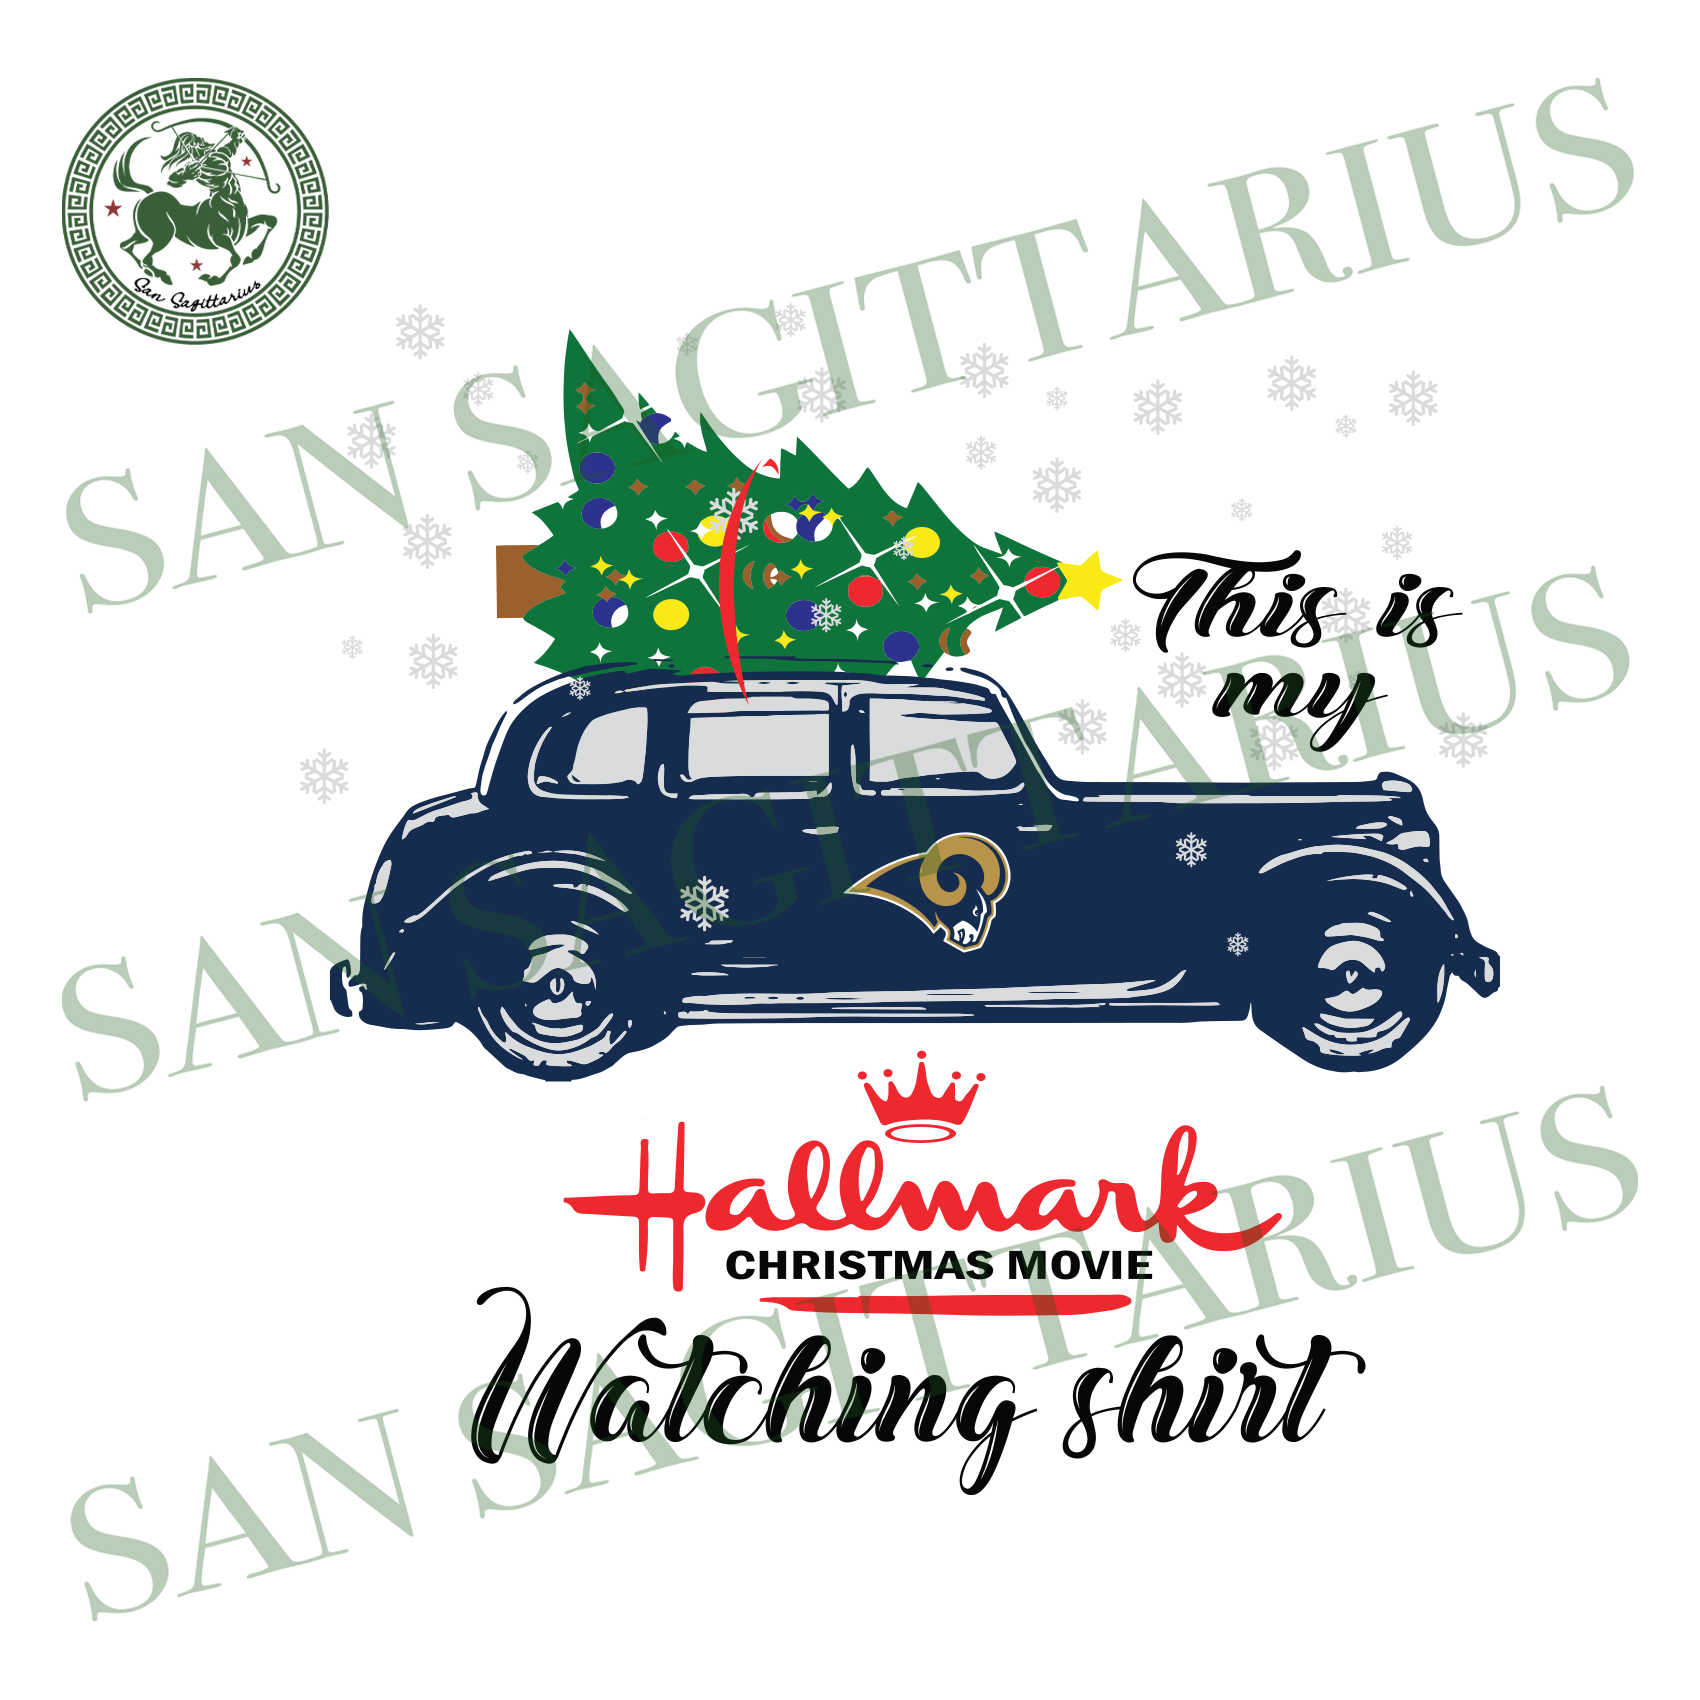 Los Angeles Rams This Is My Hallmark Christmas Movie Watching Shirt, Sport Svg, Christmas Svg, Los Angeles Rams Svg, NFL Sport Svg, Los Angeles Rams NFL Svg, Los Angeles Rams NFL Gift, Footba